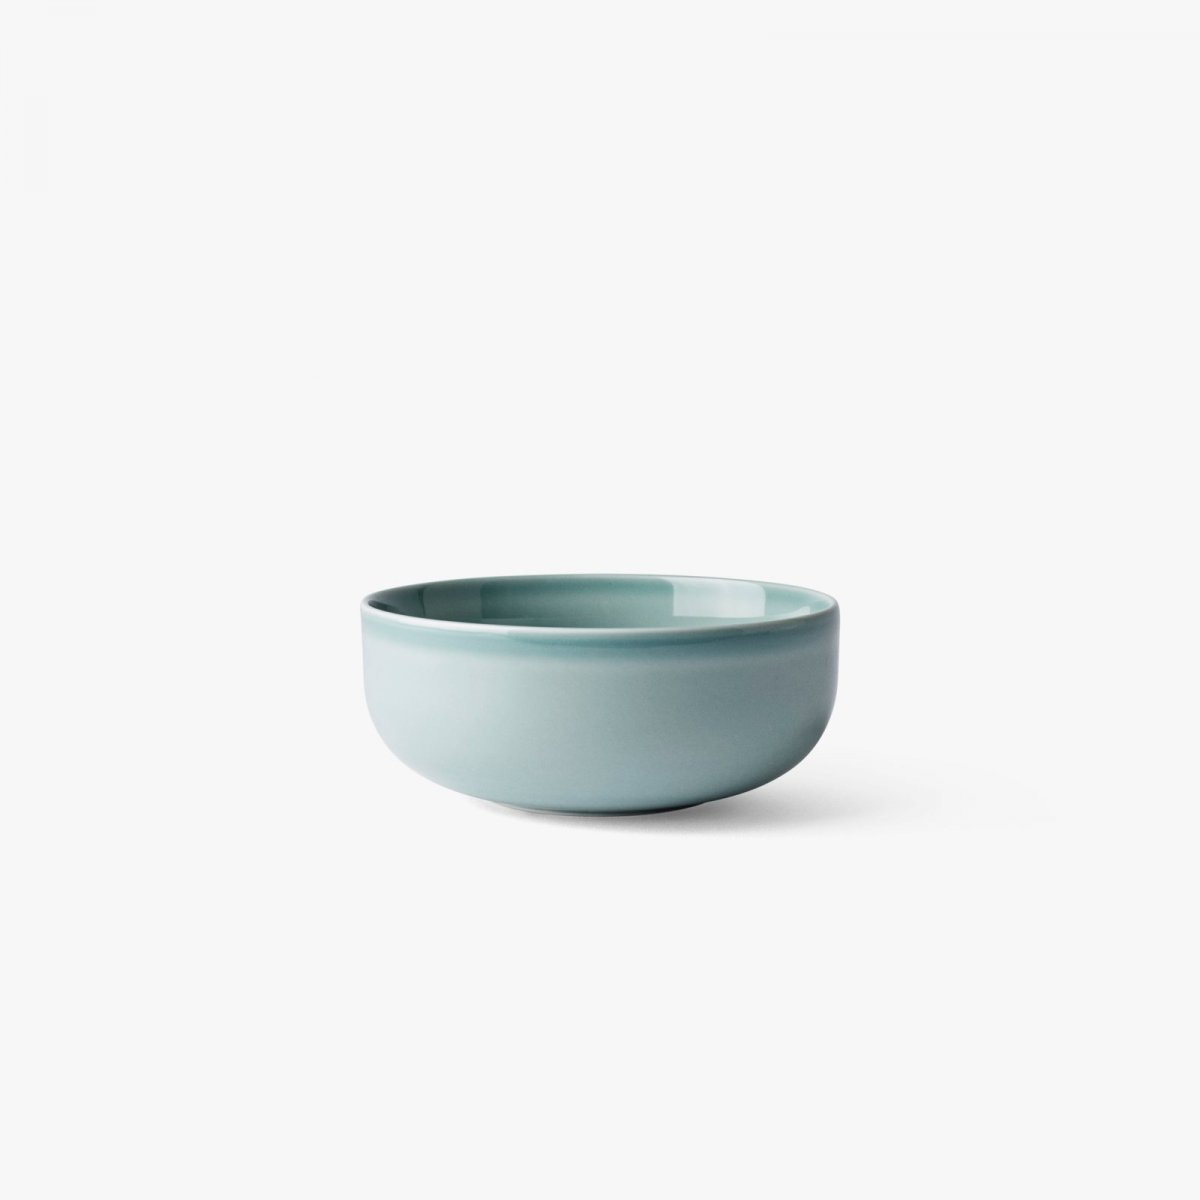 New Norm Bowl, Ø 17.5 cm, cool green.